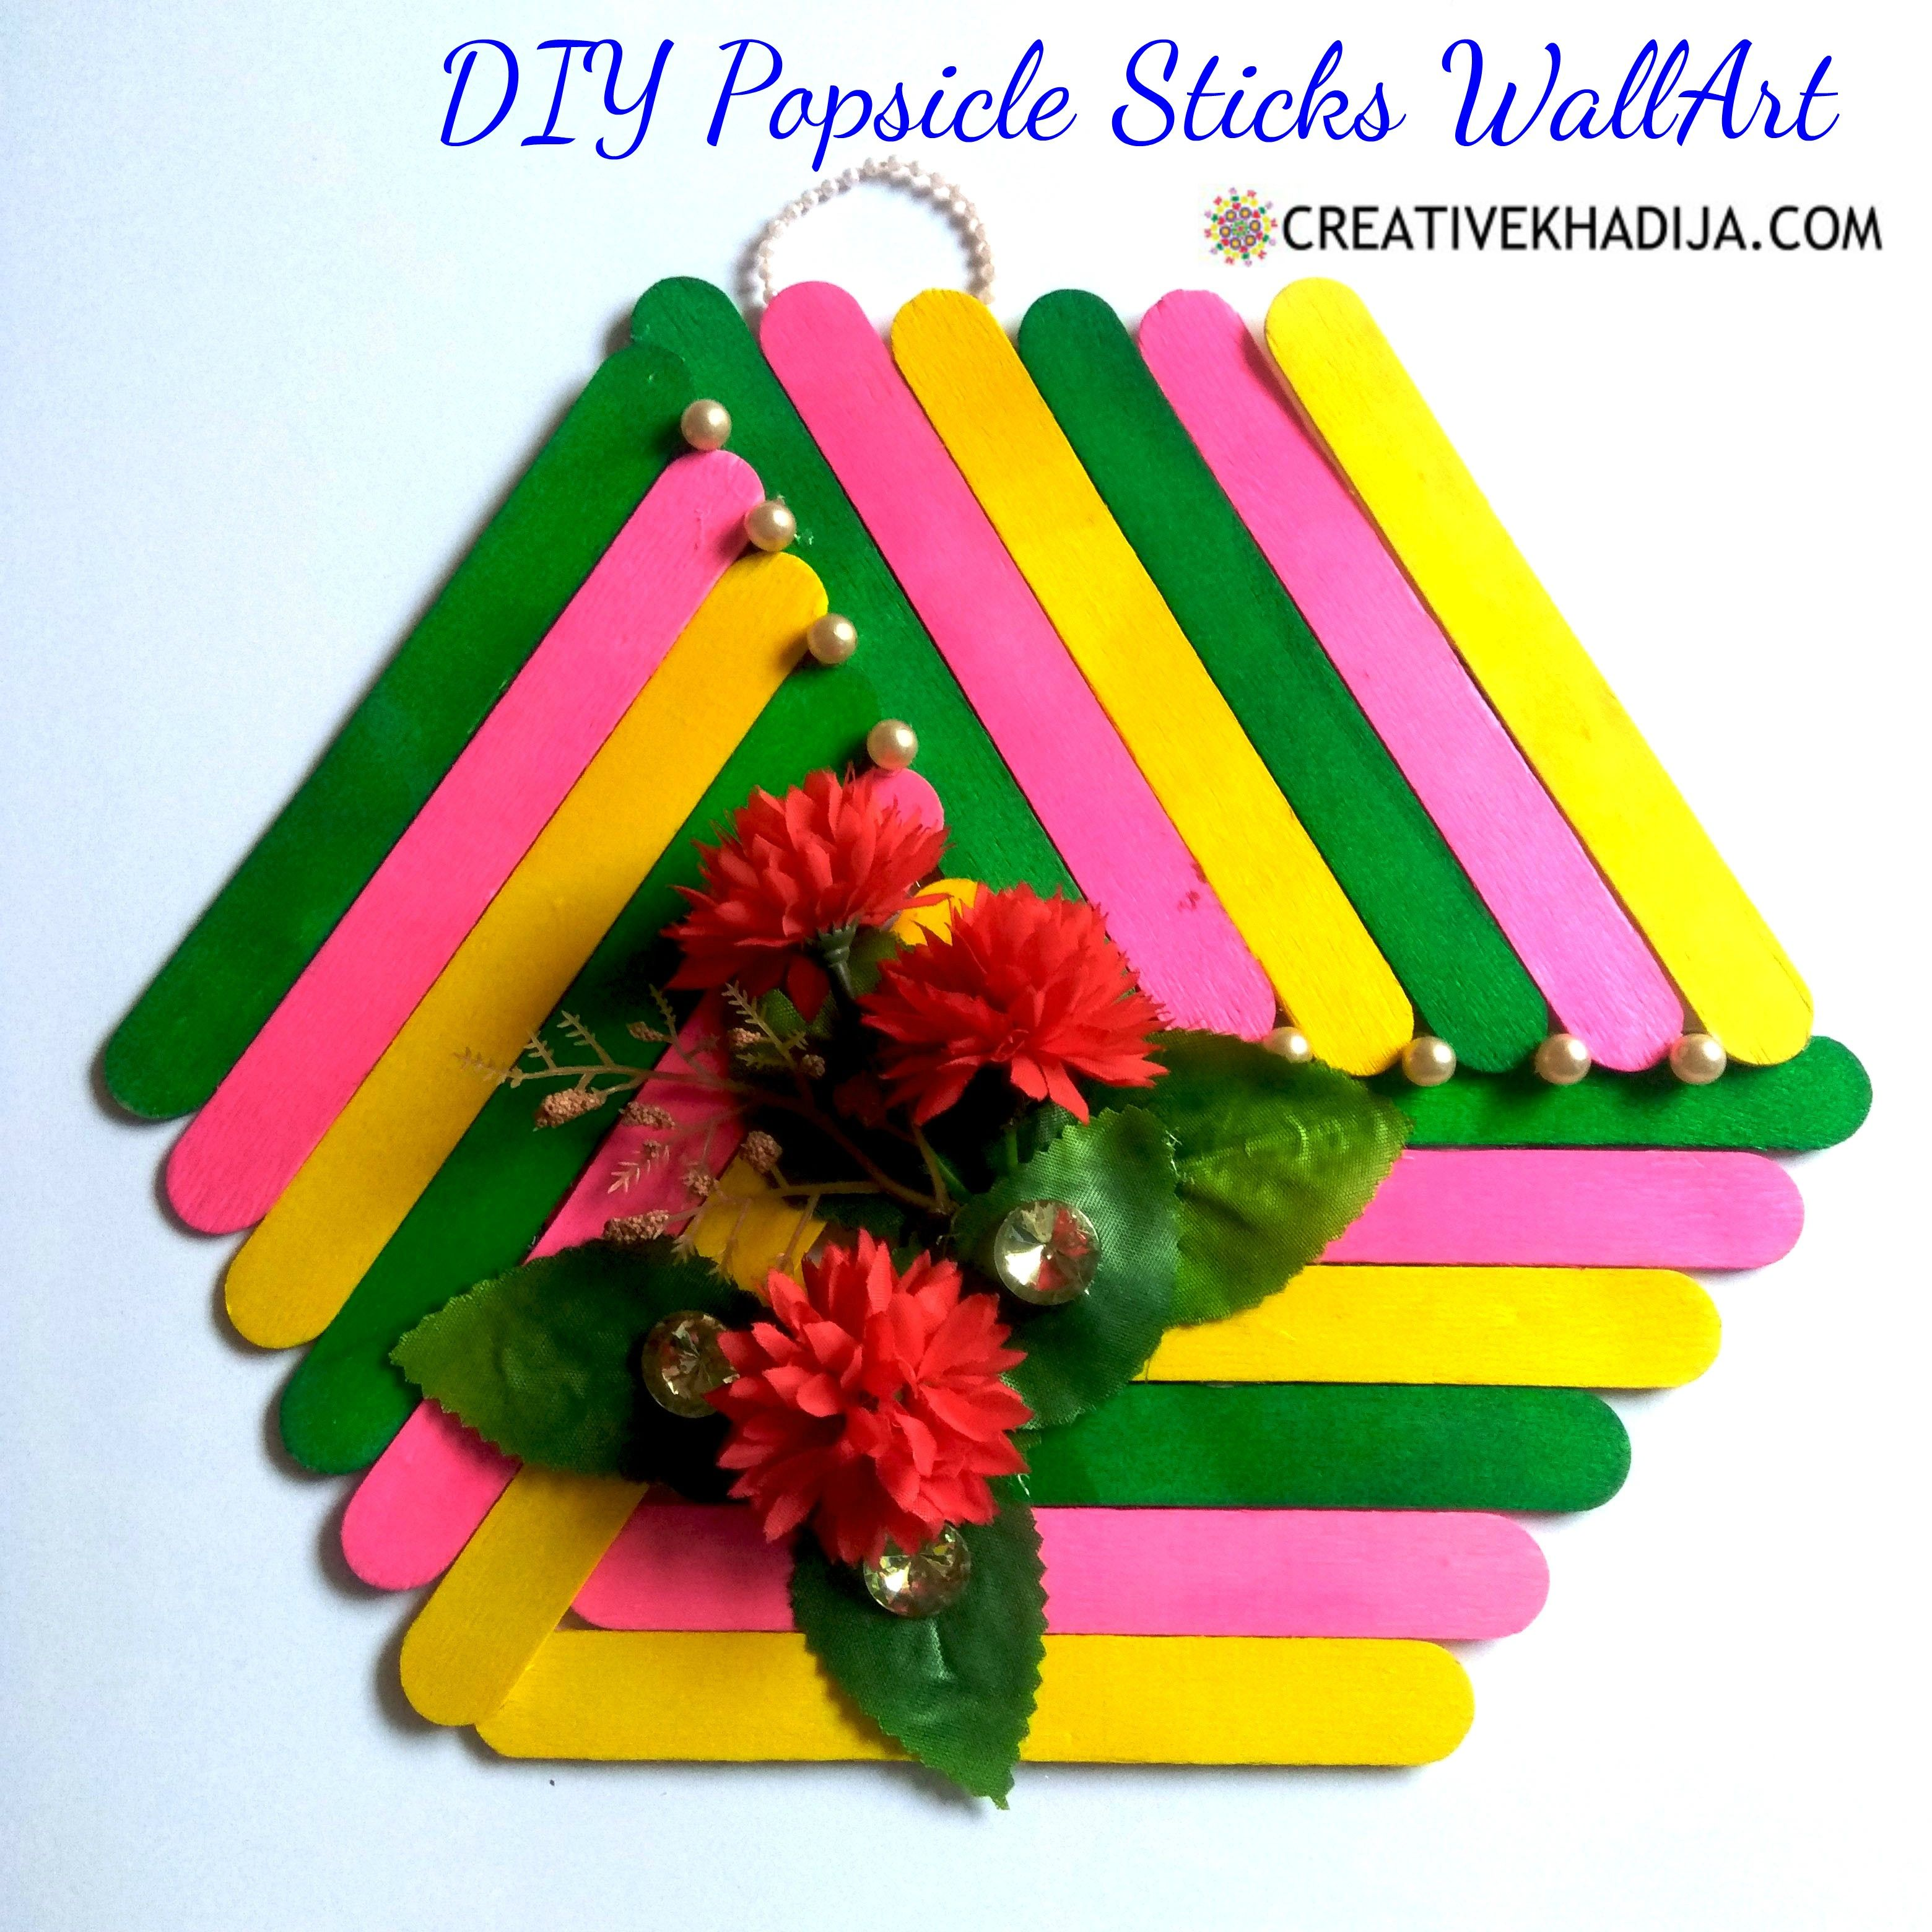 24++ Diy popsicle stick craft idea ideas in 2021